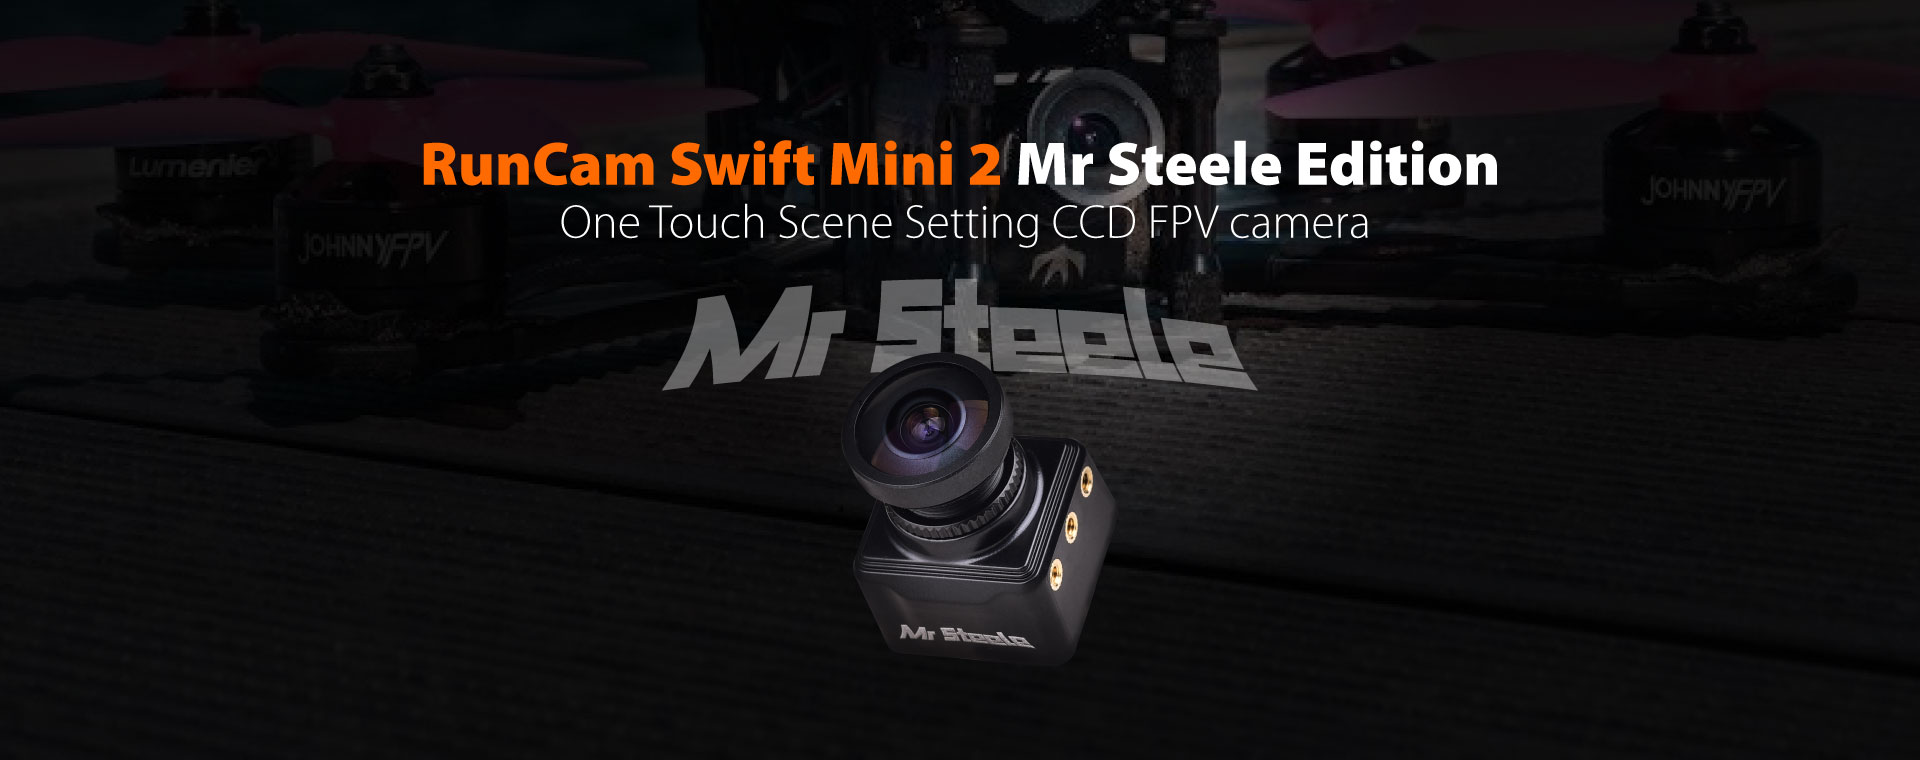 RunCam Swift Mini 2Mr Steele Edition